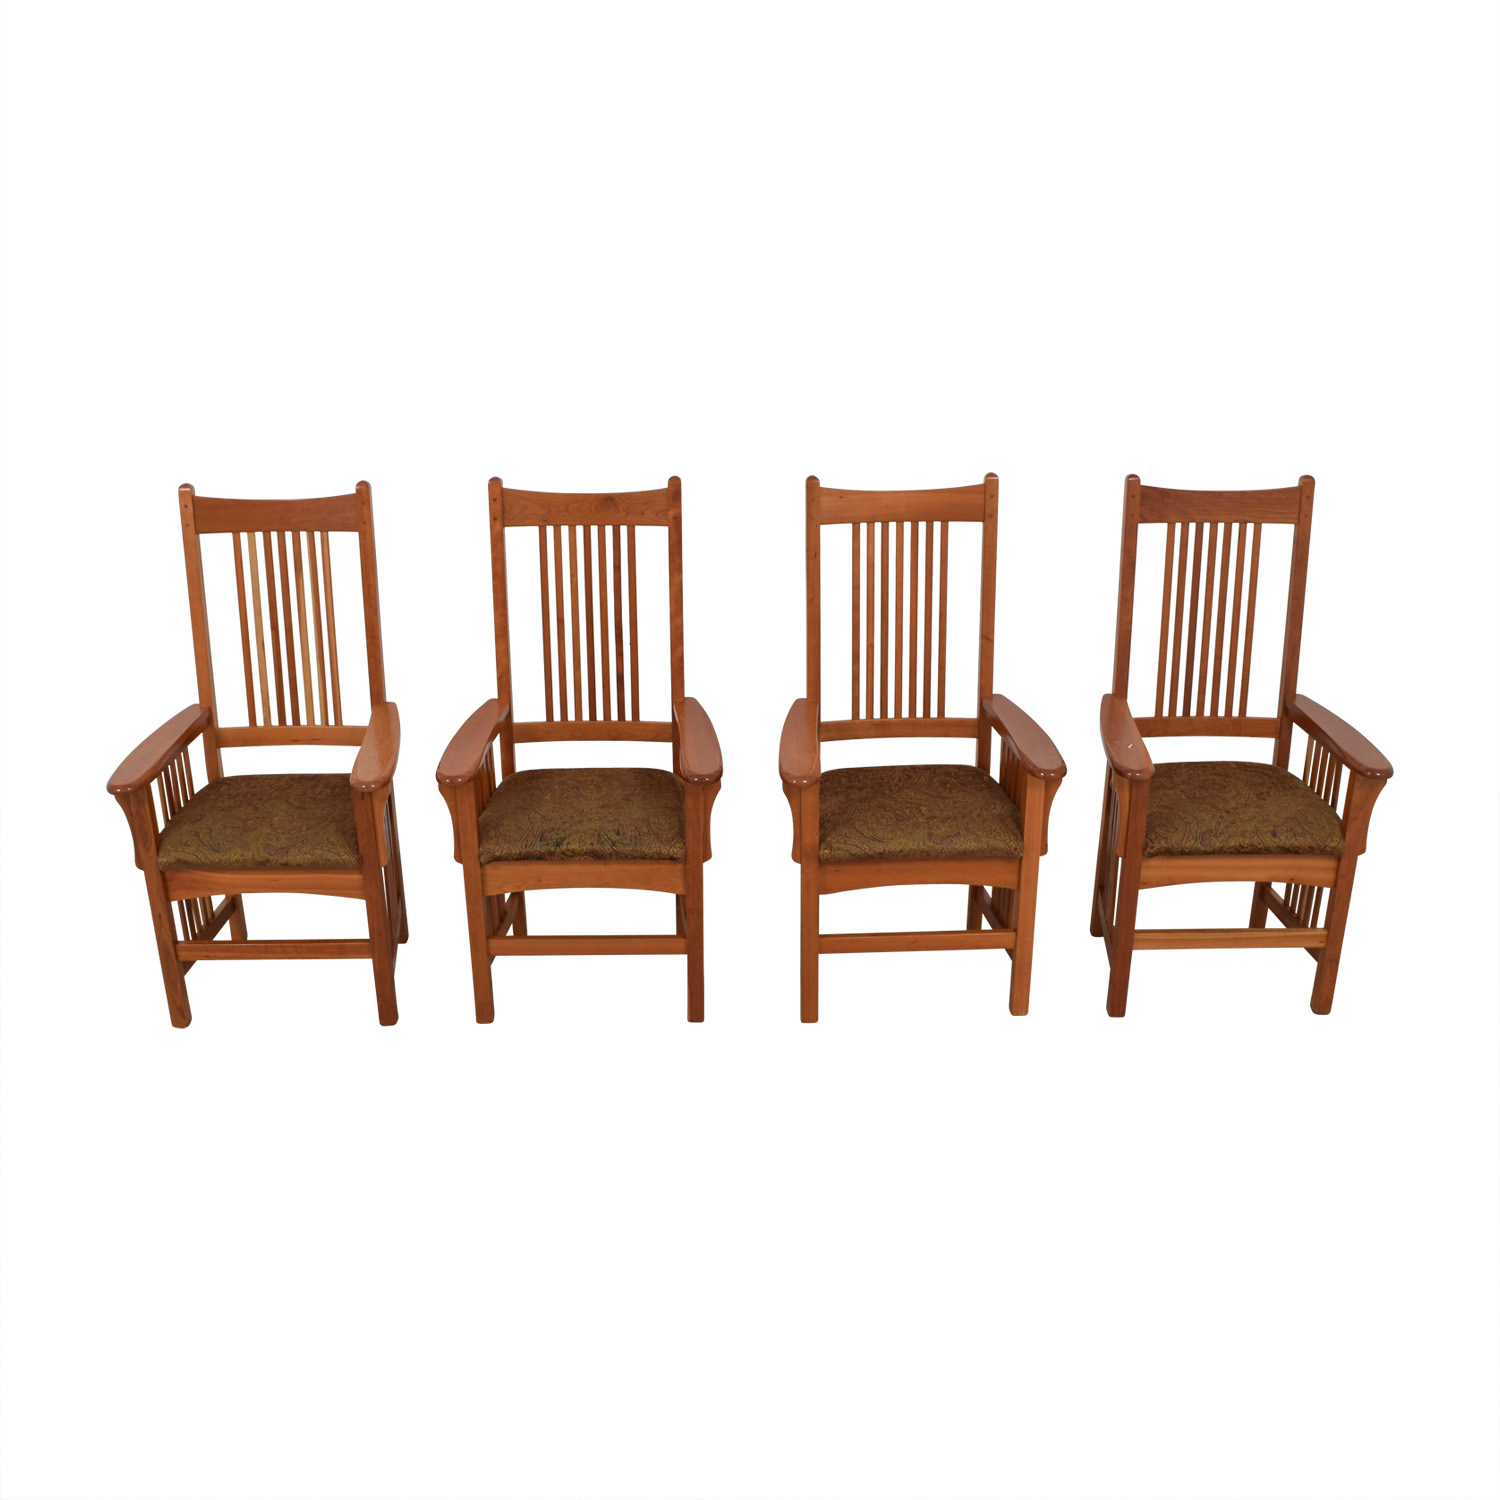 Arhaus Dining Chairs 85 Off Arhaus Furniture Arhaus Furniture Mission Style